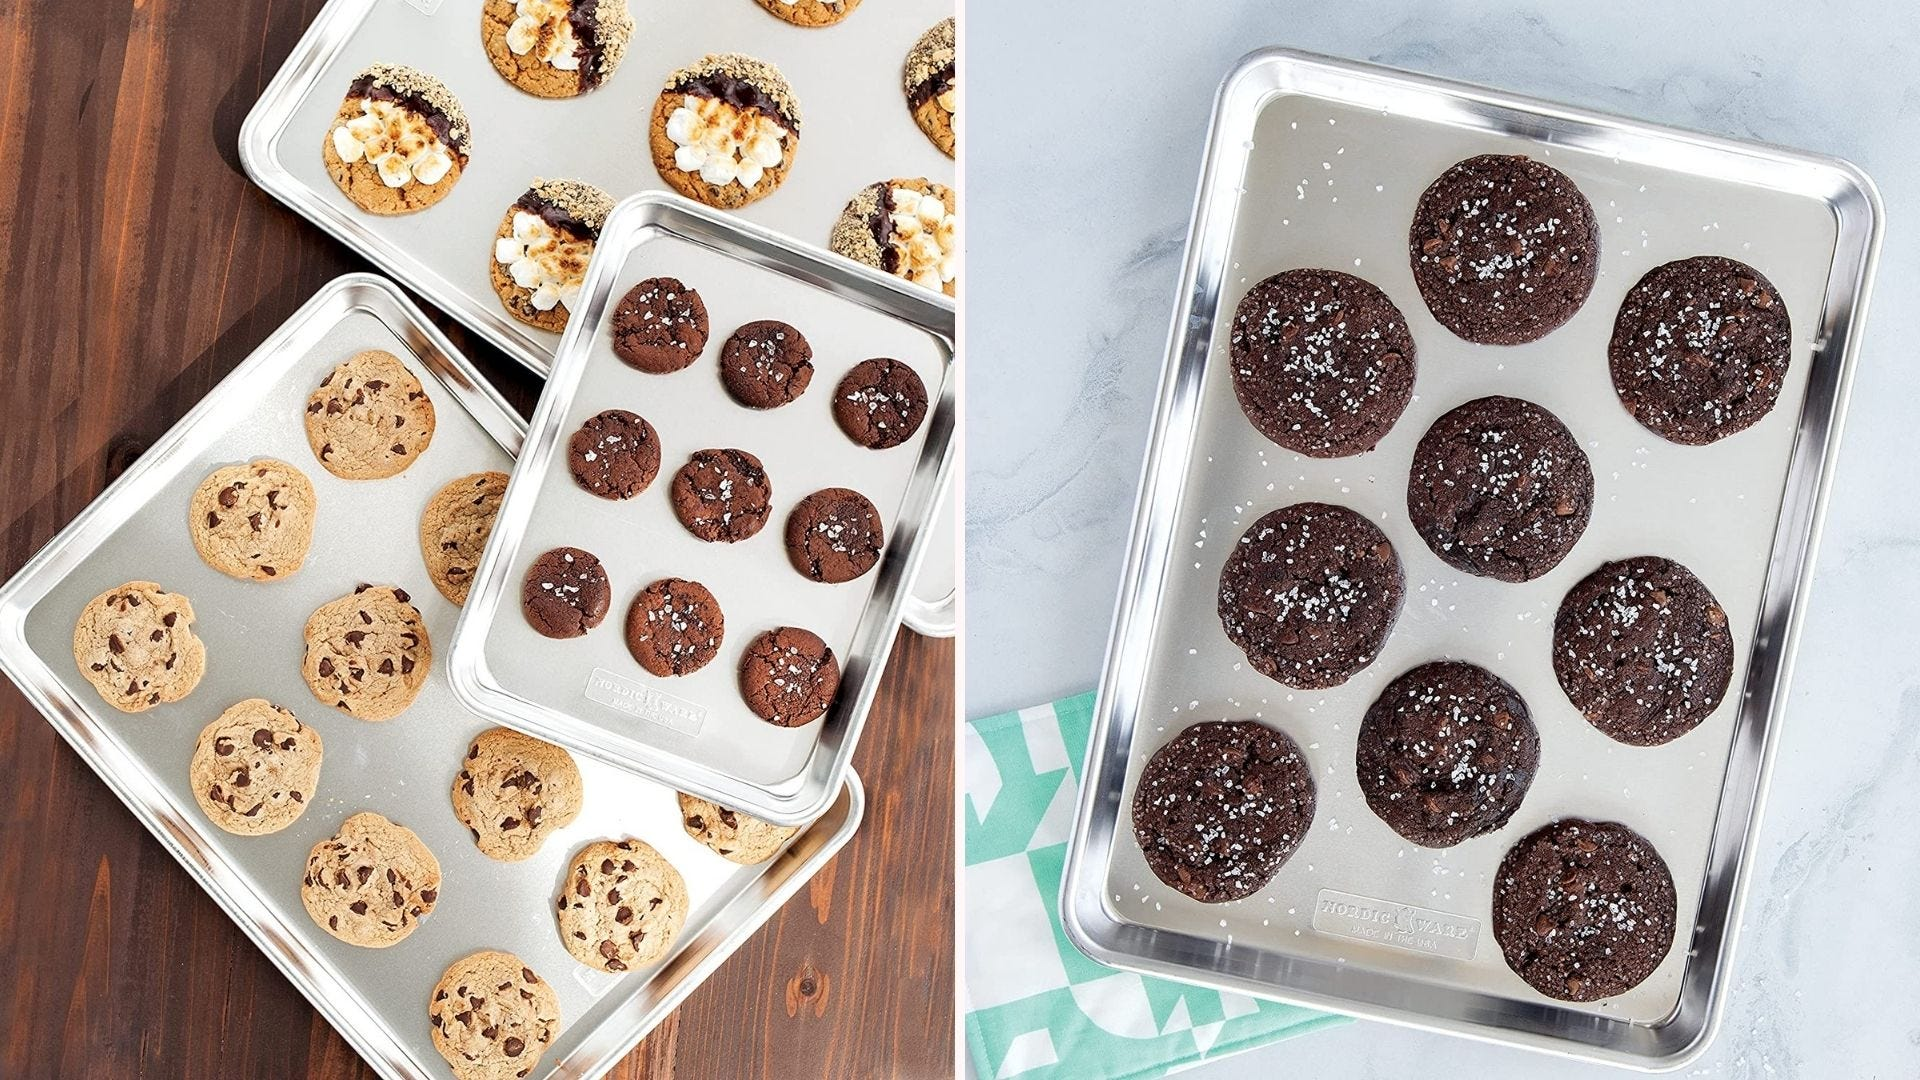 Sheets of cookies on silver baking sheets